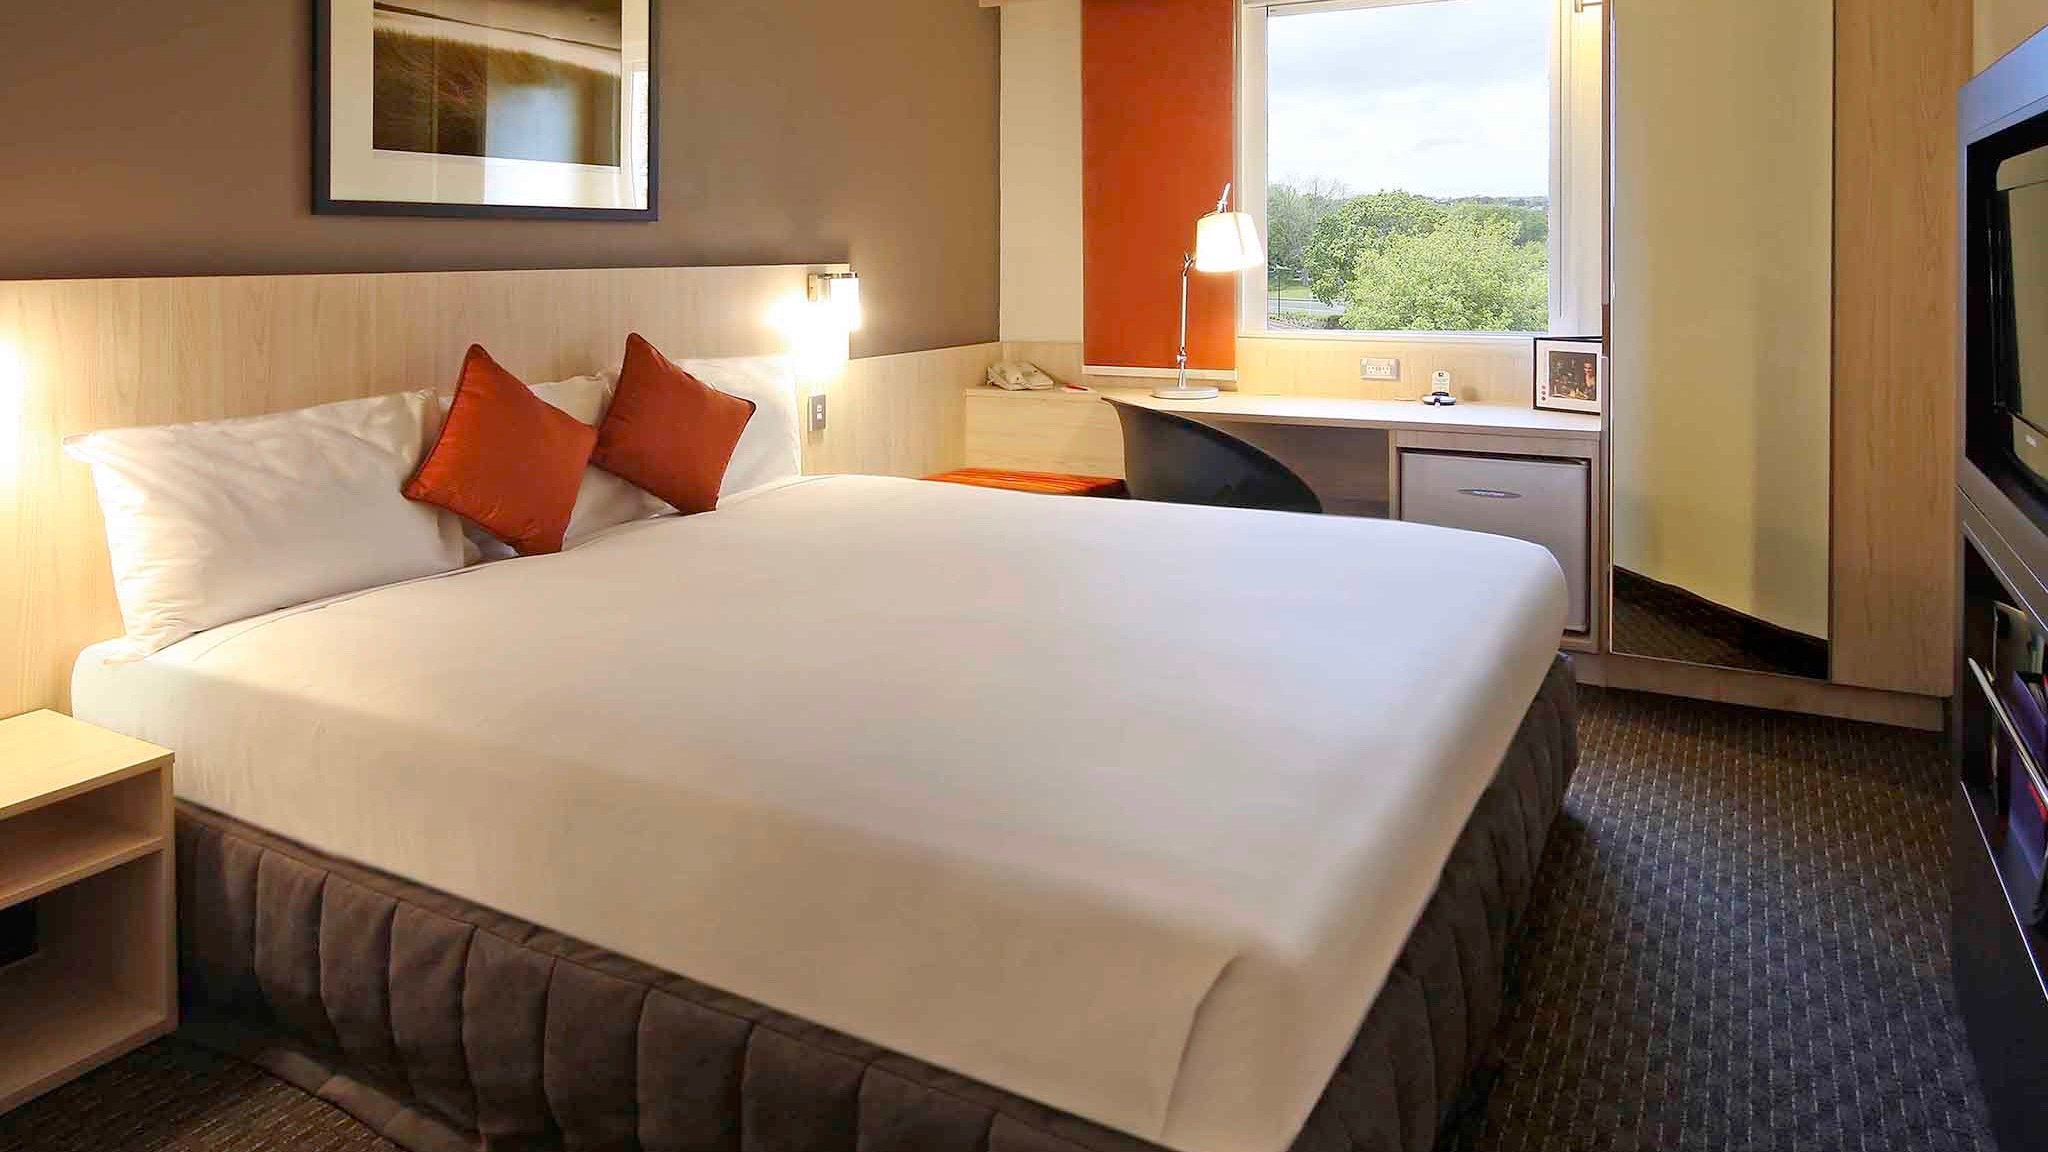 IBIS Auckland Ellerslie, cheap 3 star Double hotel room for business or families